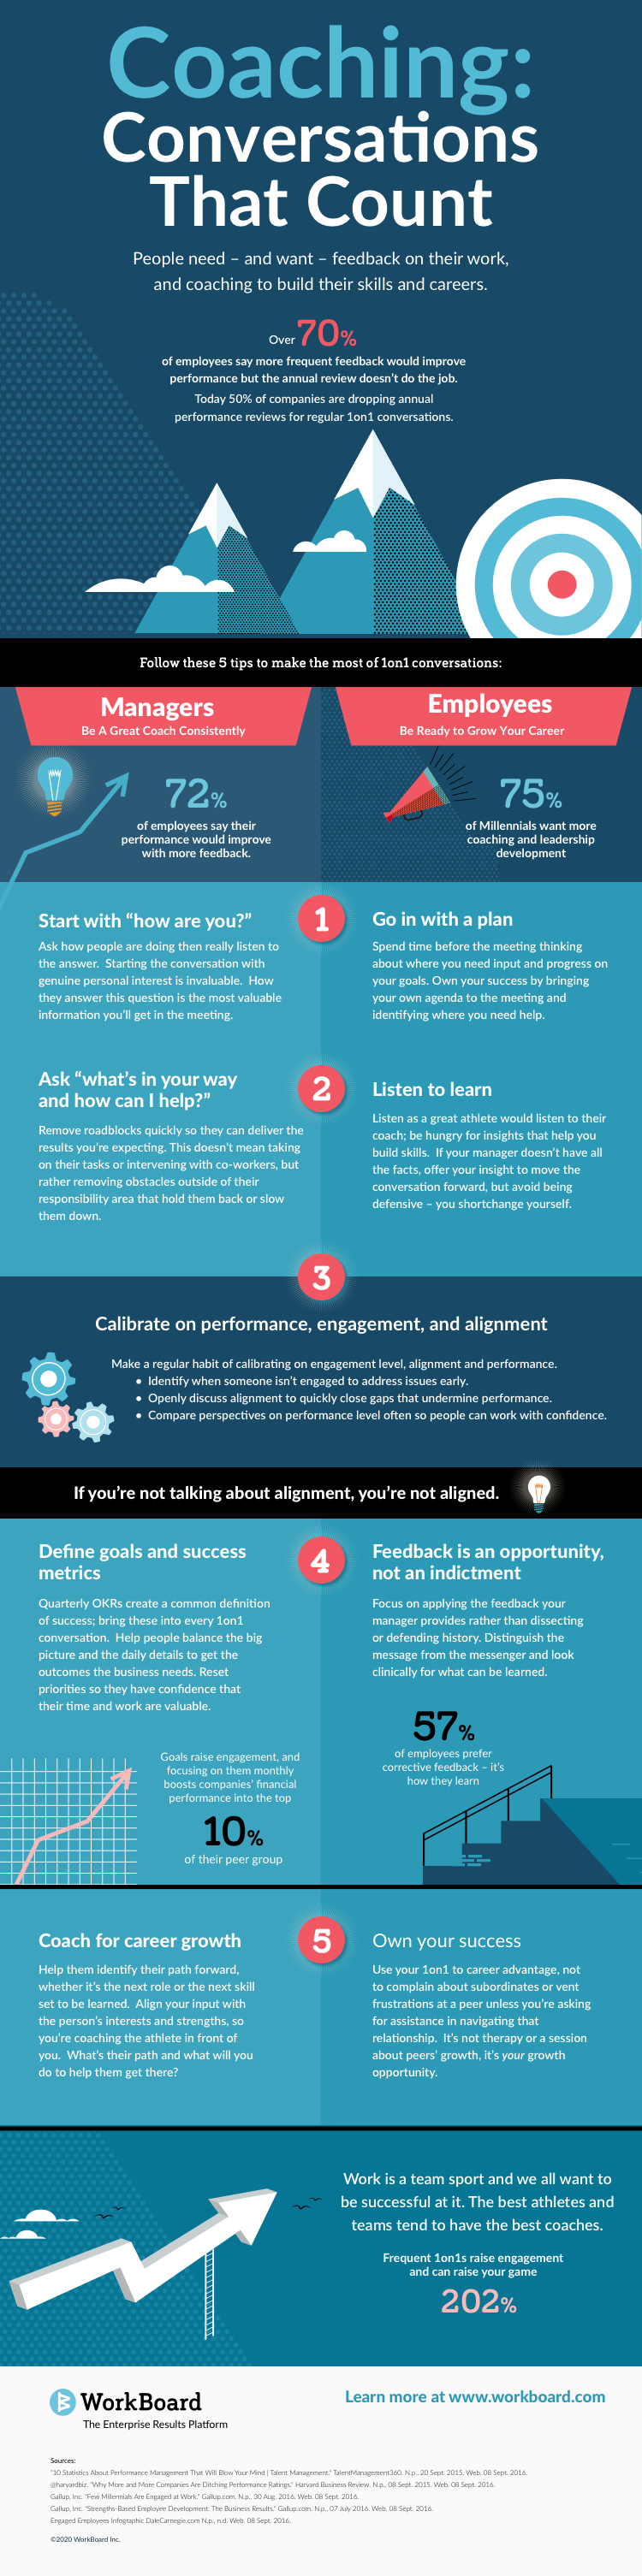 Infographic: Coaching: Conversations That Count